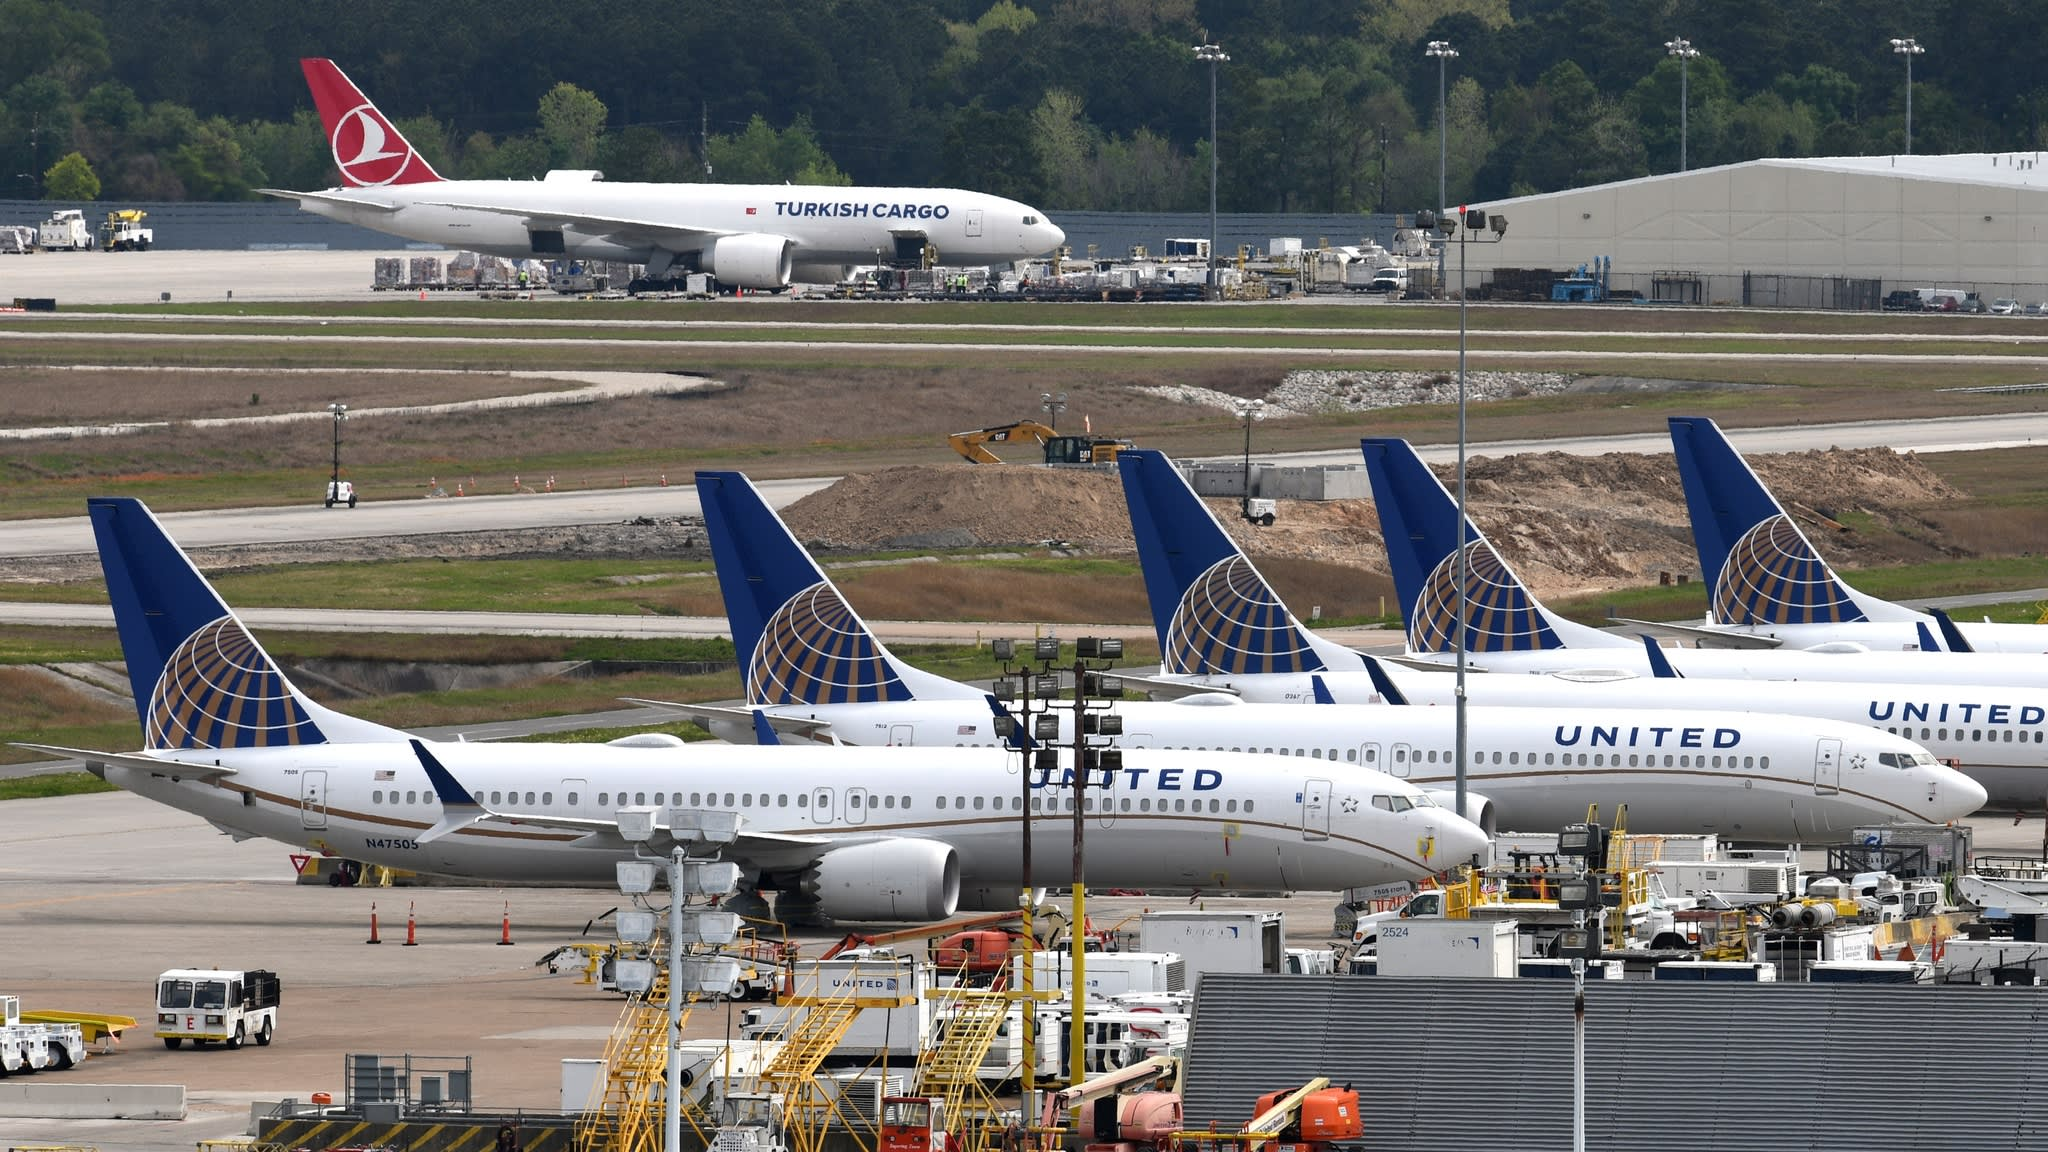 United Airlines Cancels Flights To Tokyo Seoul And Singapore Nikkei Asian Review